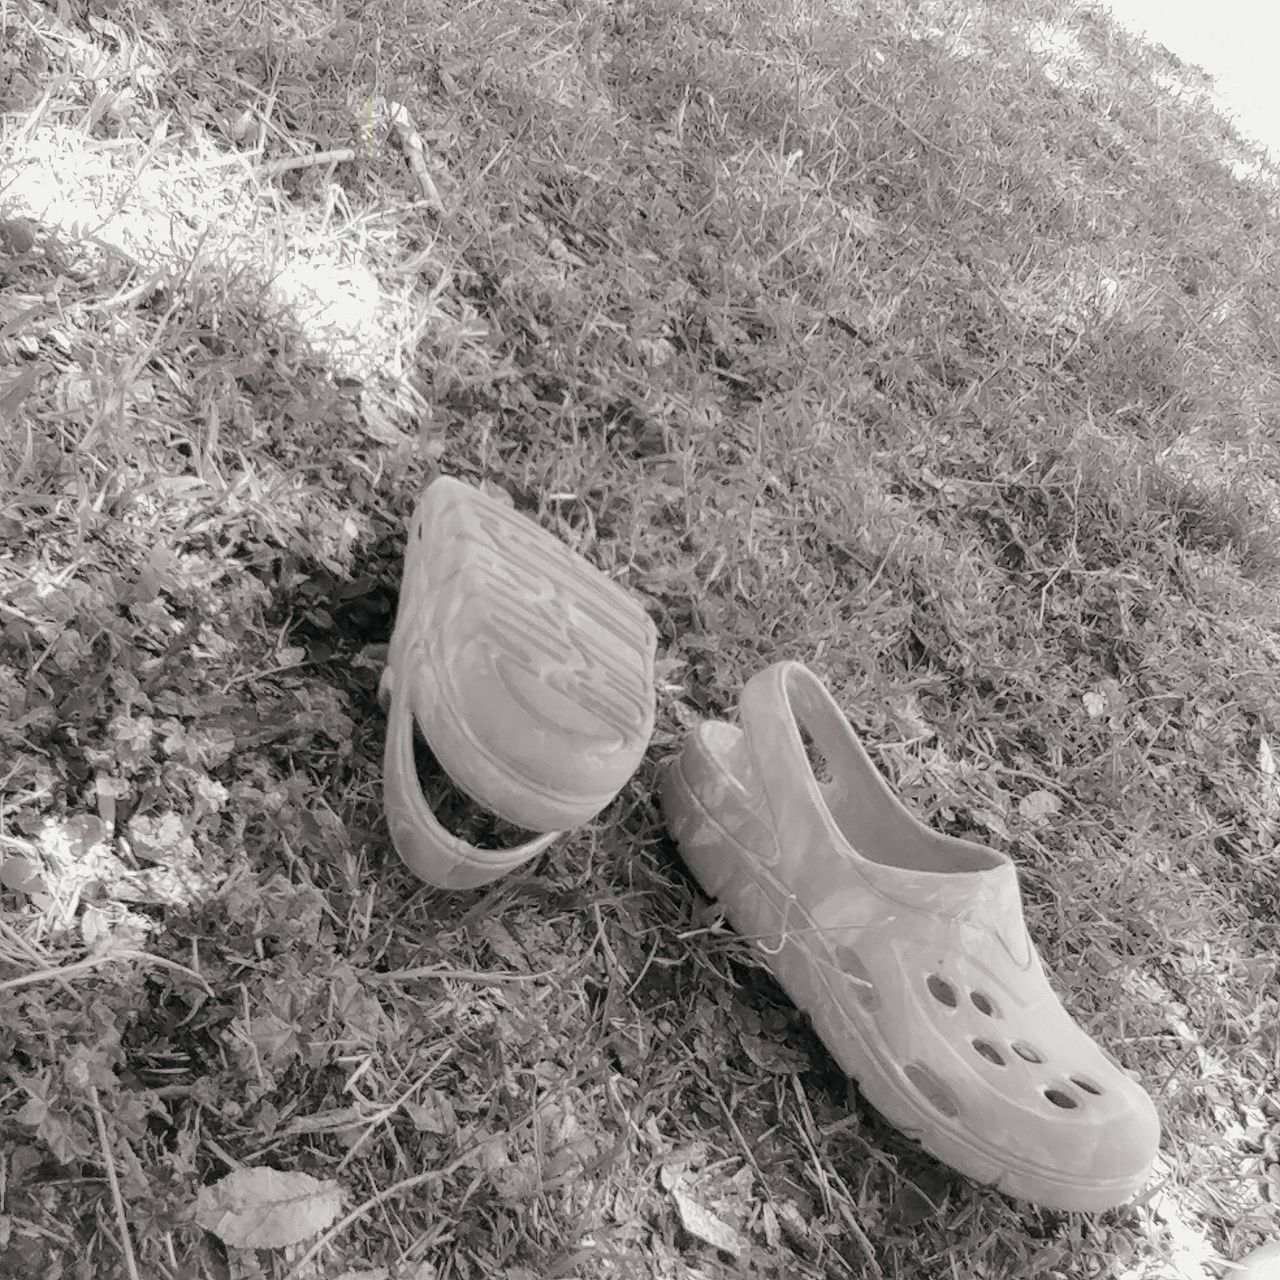 Sand Pair Shoe Things That Go Together Beach High Angle View No People Day Outdoors Close-up What's In Your Heart Child First Eyeem Photo Love ♥ Faith Just Me <3 Inthemoment 🎈👻 angelkissesfrmmetoyou The Great Outdoors - 2017 EyeEm Awards Growth